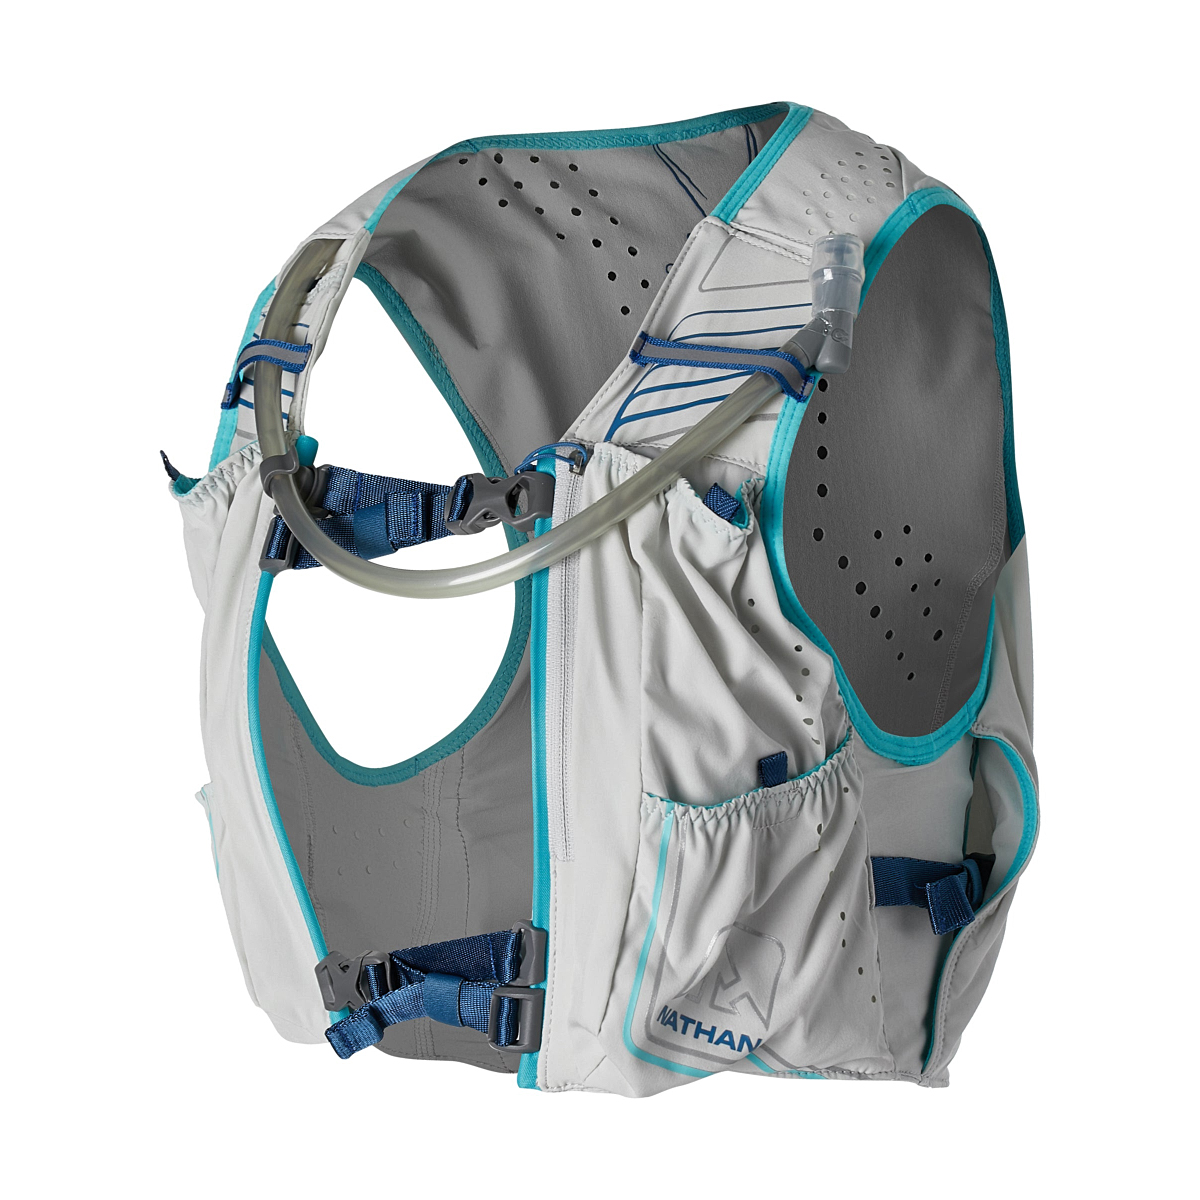 Women's Nathan Vaporhowe 2.0 12 Liter Race Vest - Color: Vapor Blue/True Navy - Size: XS, Vapor Blue/True Navy, large, image 1